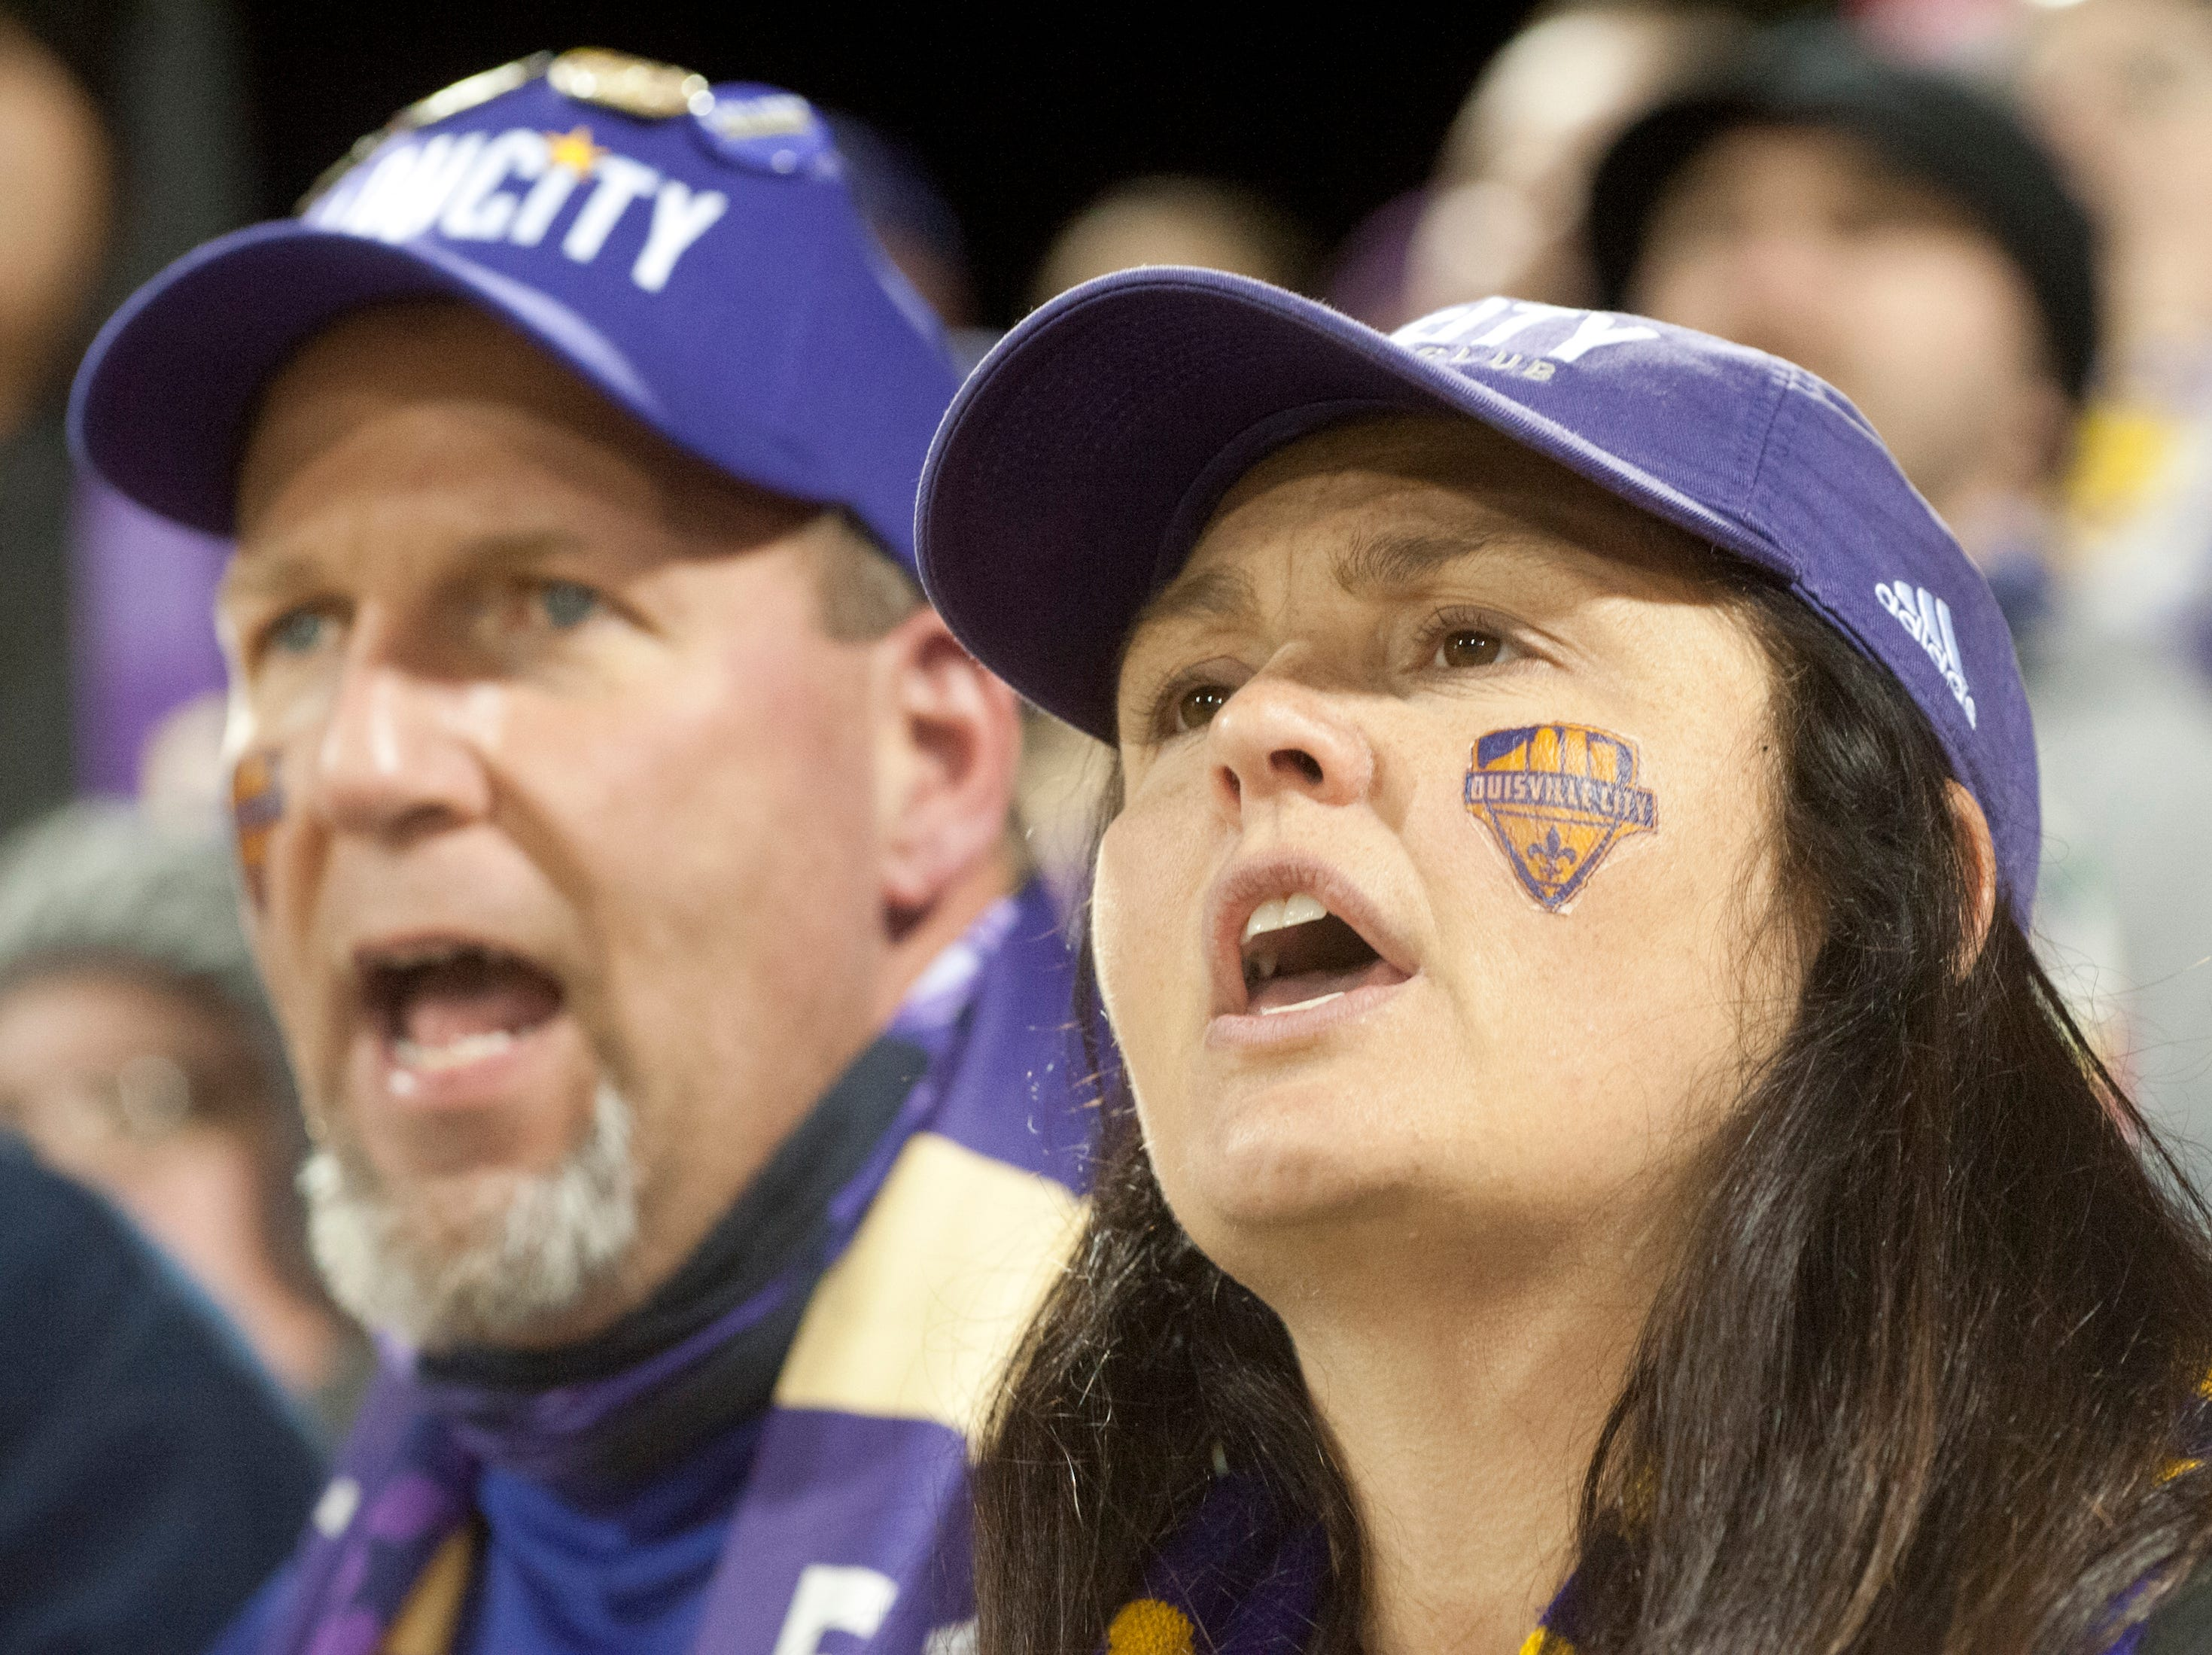 Philip and Mary Sapienza of Saint Matthews, show their concern during a penalty kick as Louisville City FC takes on the Phoenix Rising FC for the 2018 USL Cup. Mary is wearing a Louisville City face tattoo.November 08, 2018